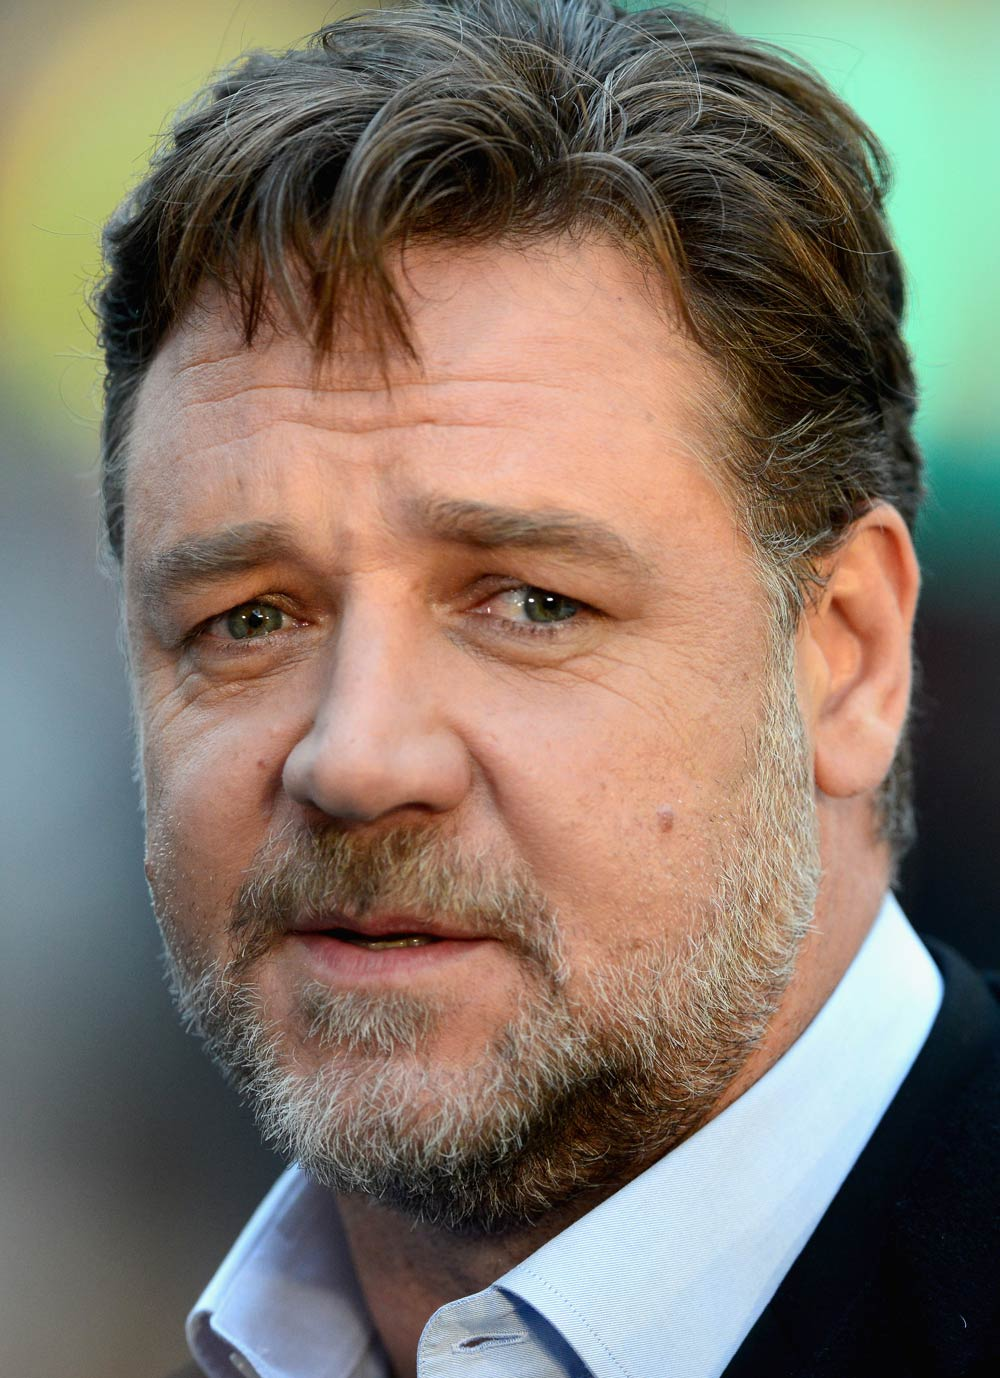 Best Iphone Wallpapers Hd Russell Crowe 198937 Wallpapers High Quality Download Free